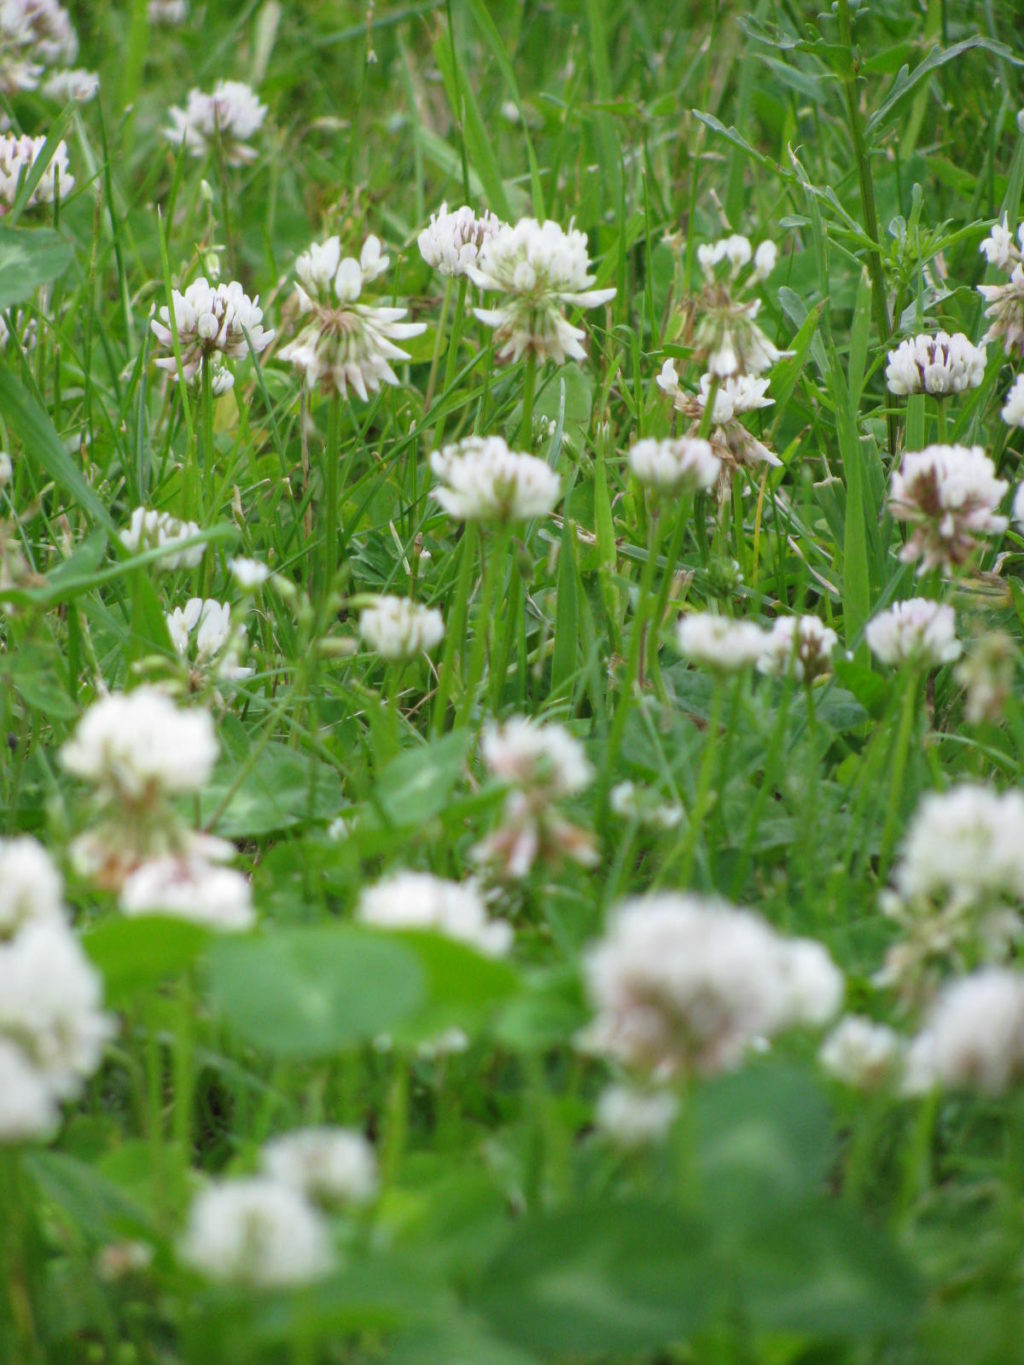 Grass and clover growing in the field.